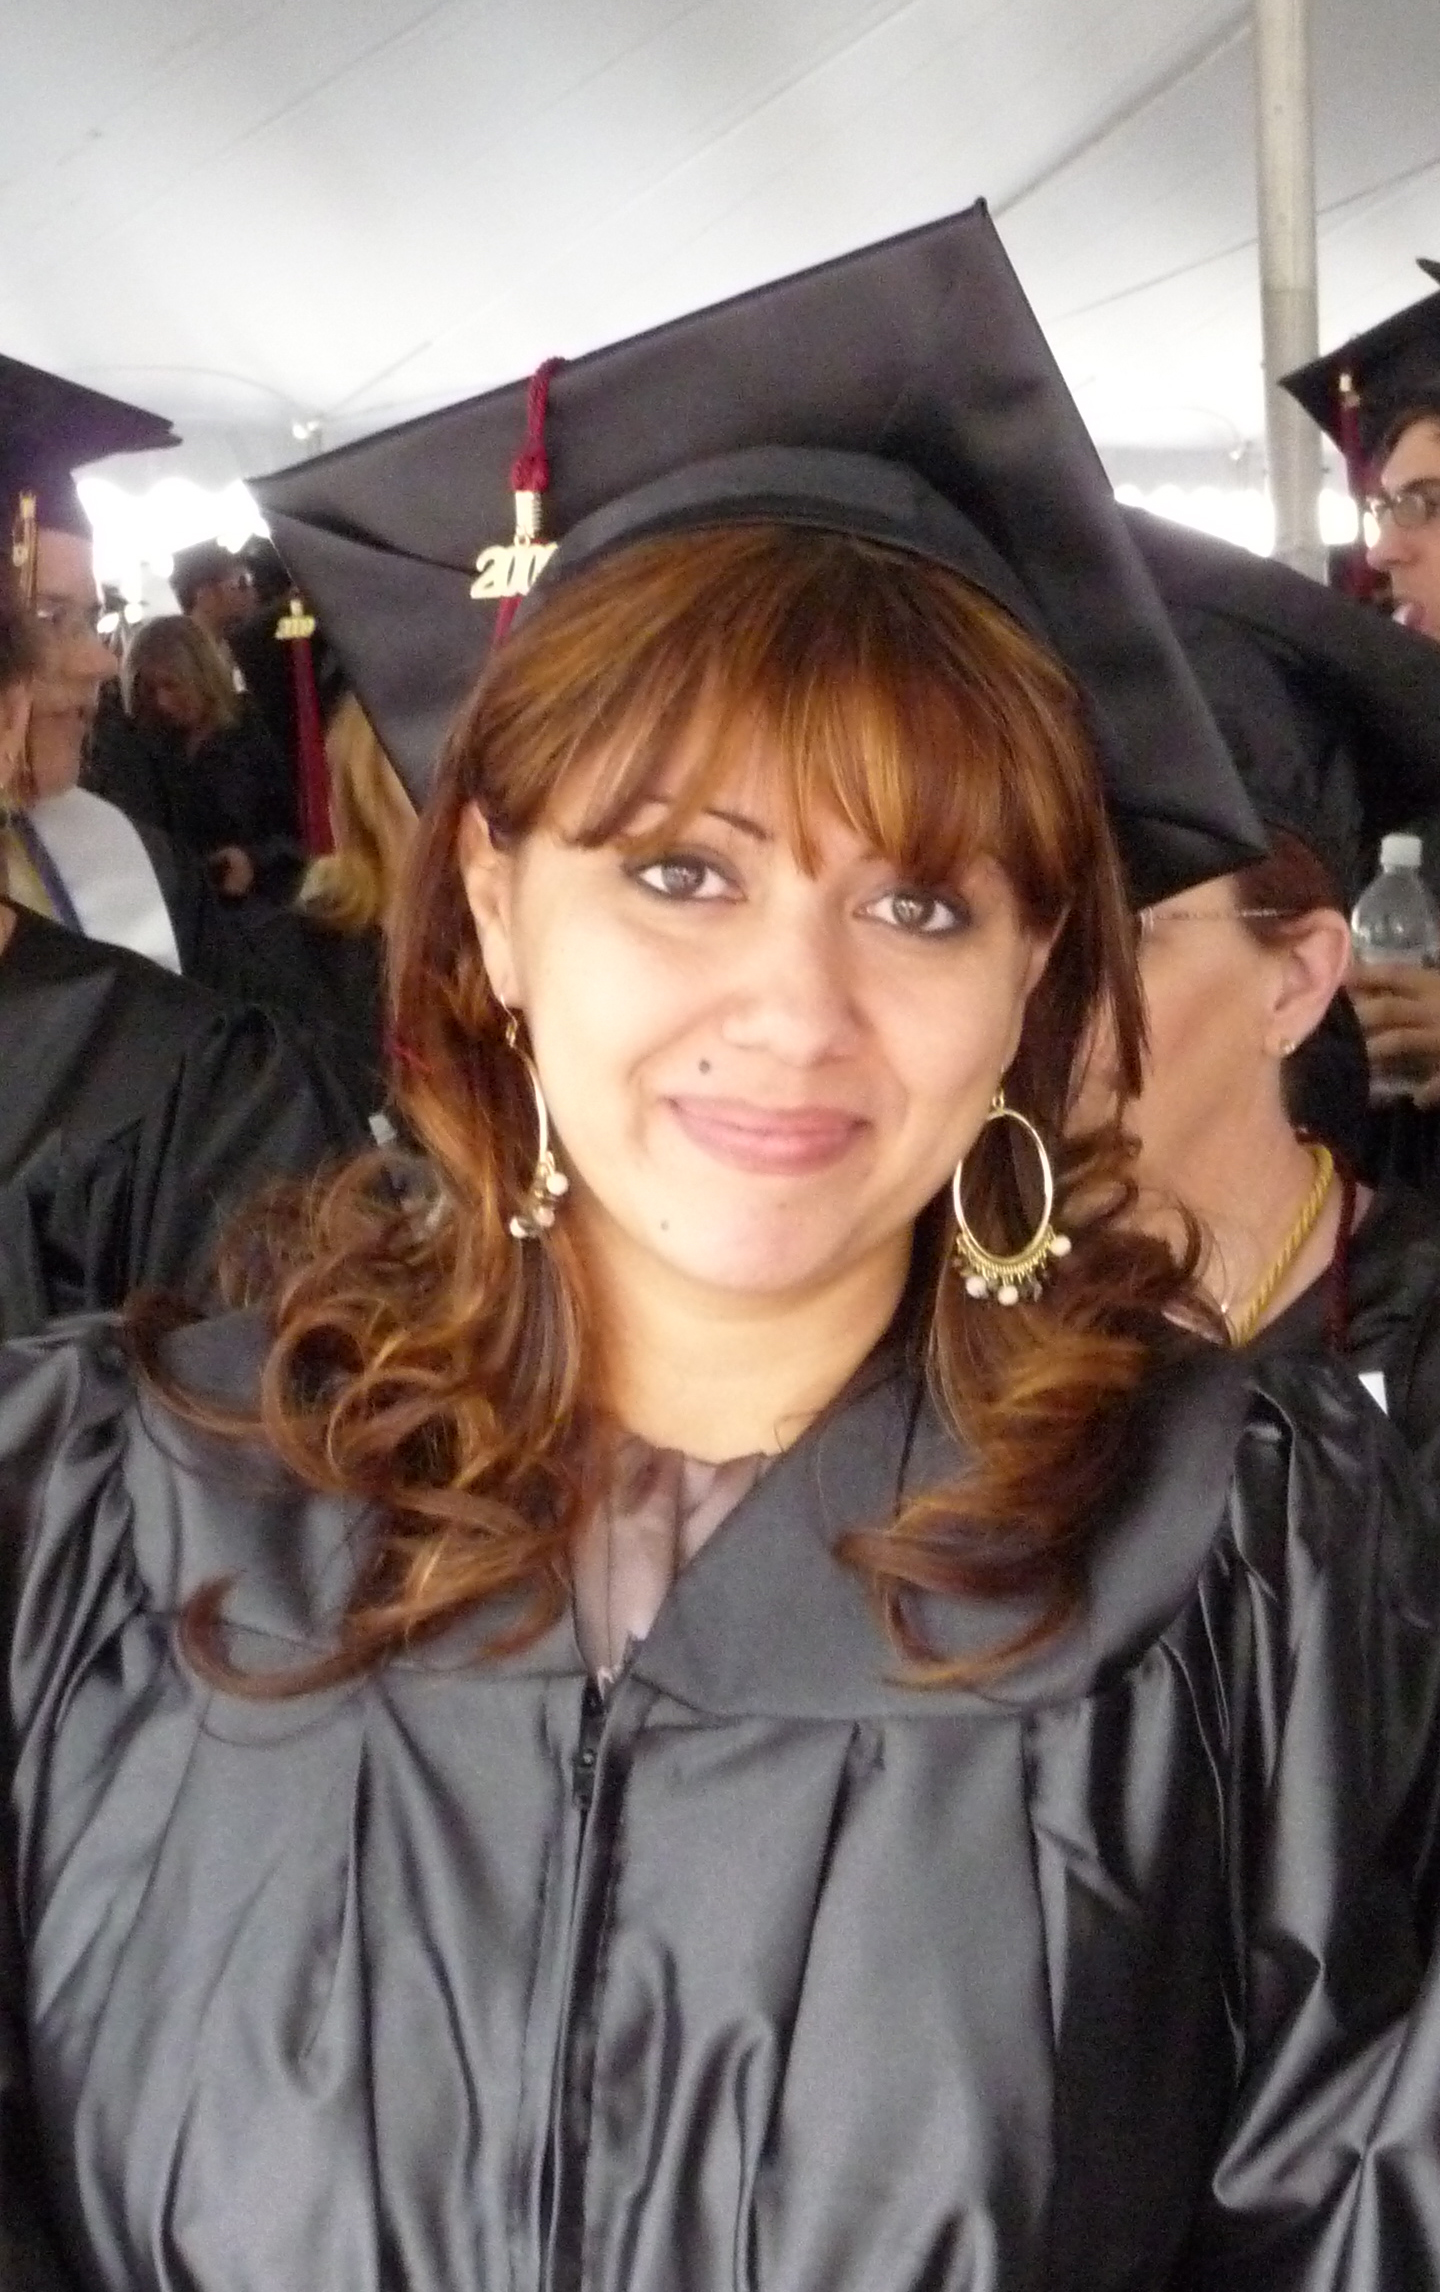 Non-traditional age Latina woman with large, gold earrings, smiling in cap and gown at her college graduation.